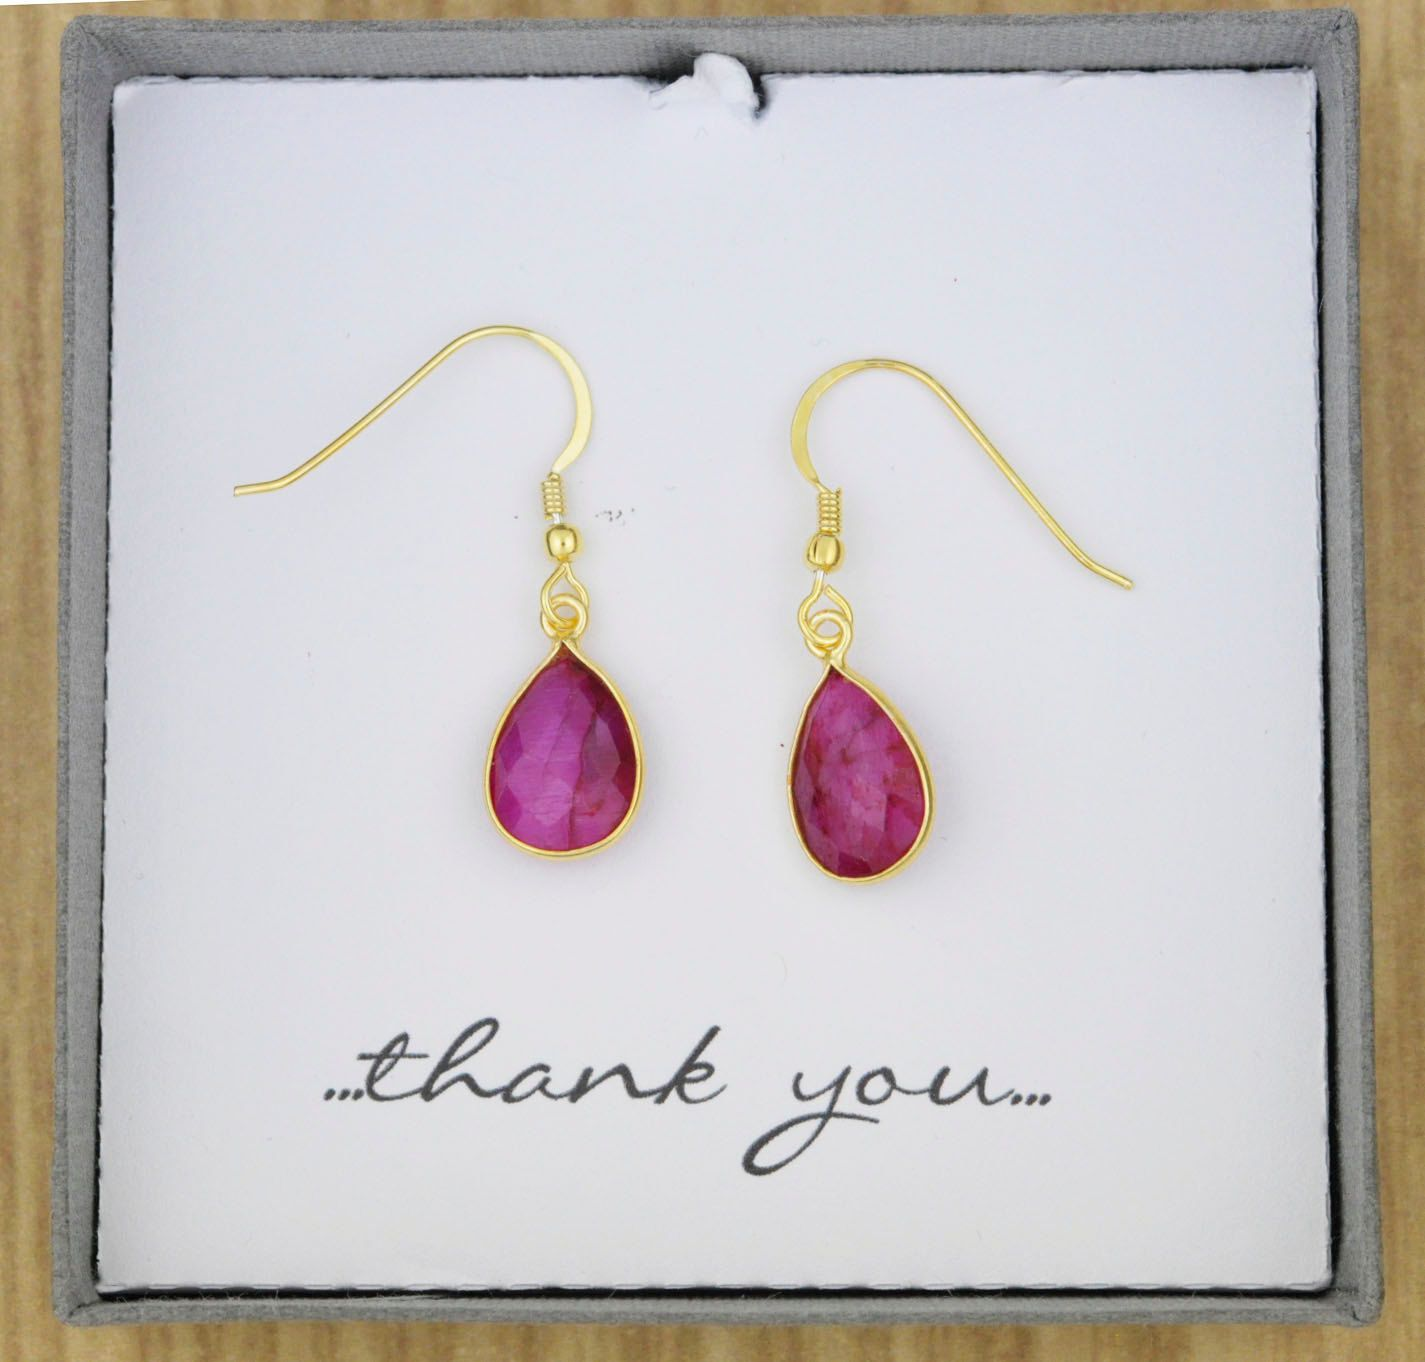 Genuine Red Ruby Semiprecious Gemstone Drop Earrings with Sterling Silver Gold Plated - Red, Rose, Pink, Fuschia, Bridesmaid, Wedding Gift by ThePinkLamShop on Etsy